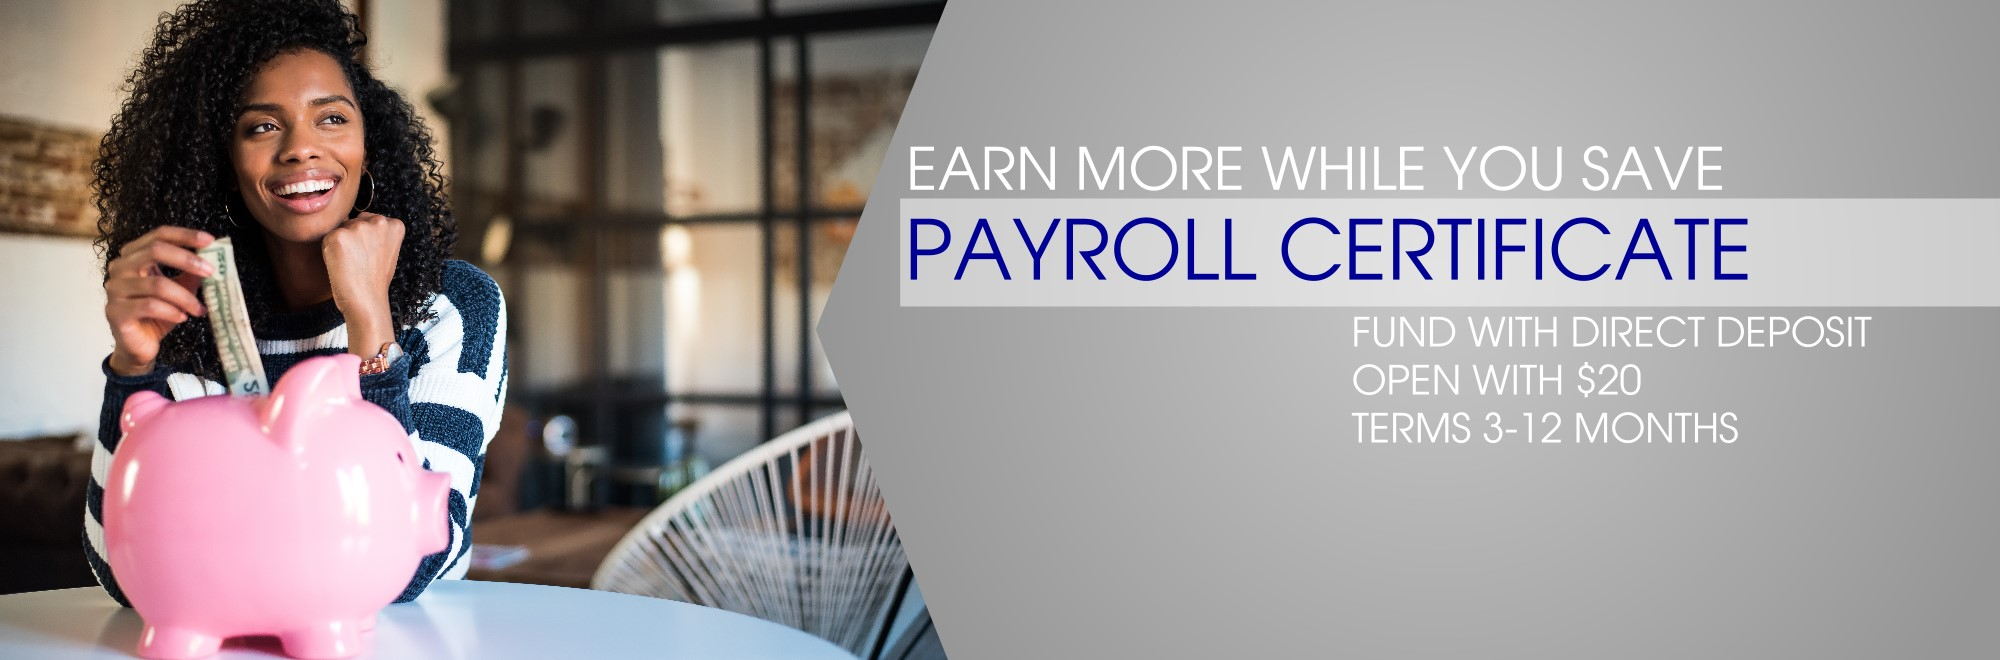 Earn more while you save with a payroll certificate. fund with direct deposit. open with $20. Terms 3-12 months.